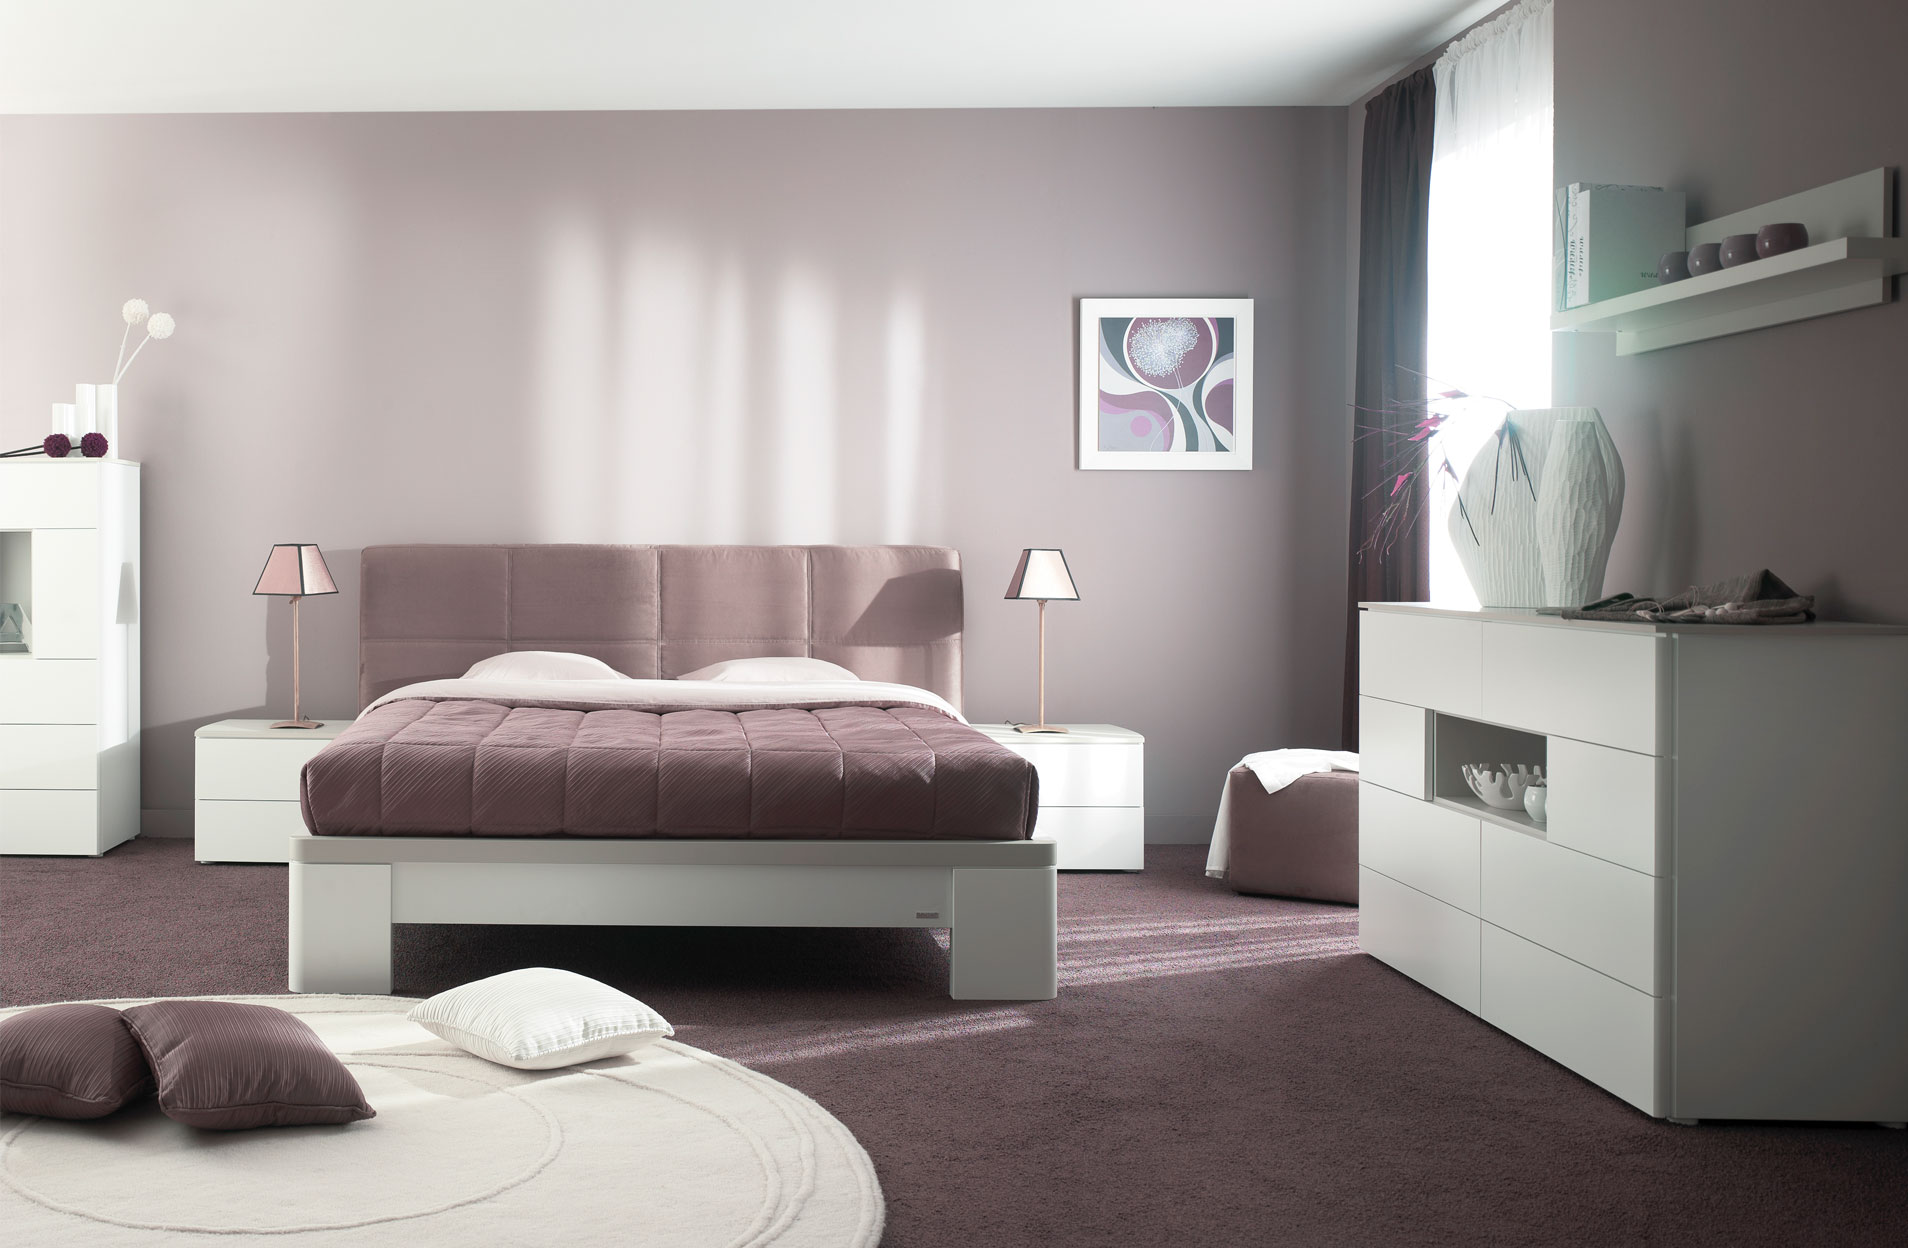 Inspiration d coration de chambre contemporaine gautier opalia for Idee deco chambre contemporaine